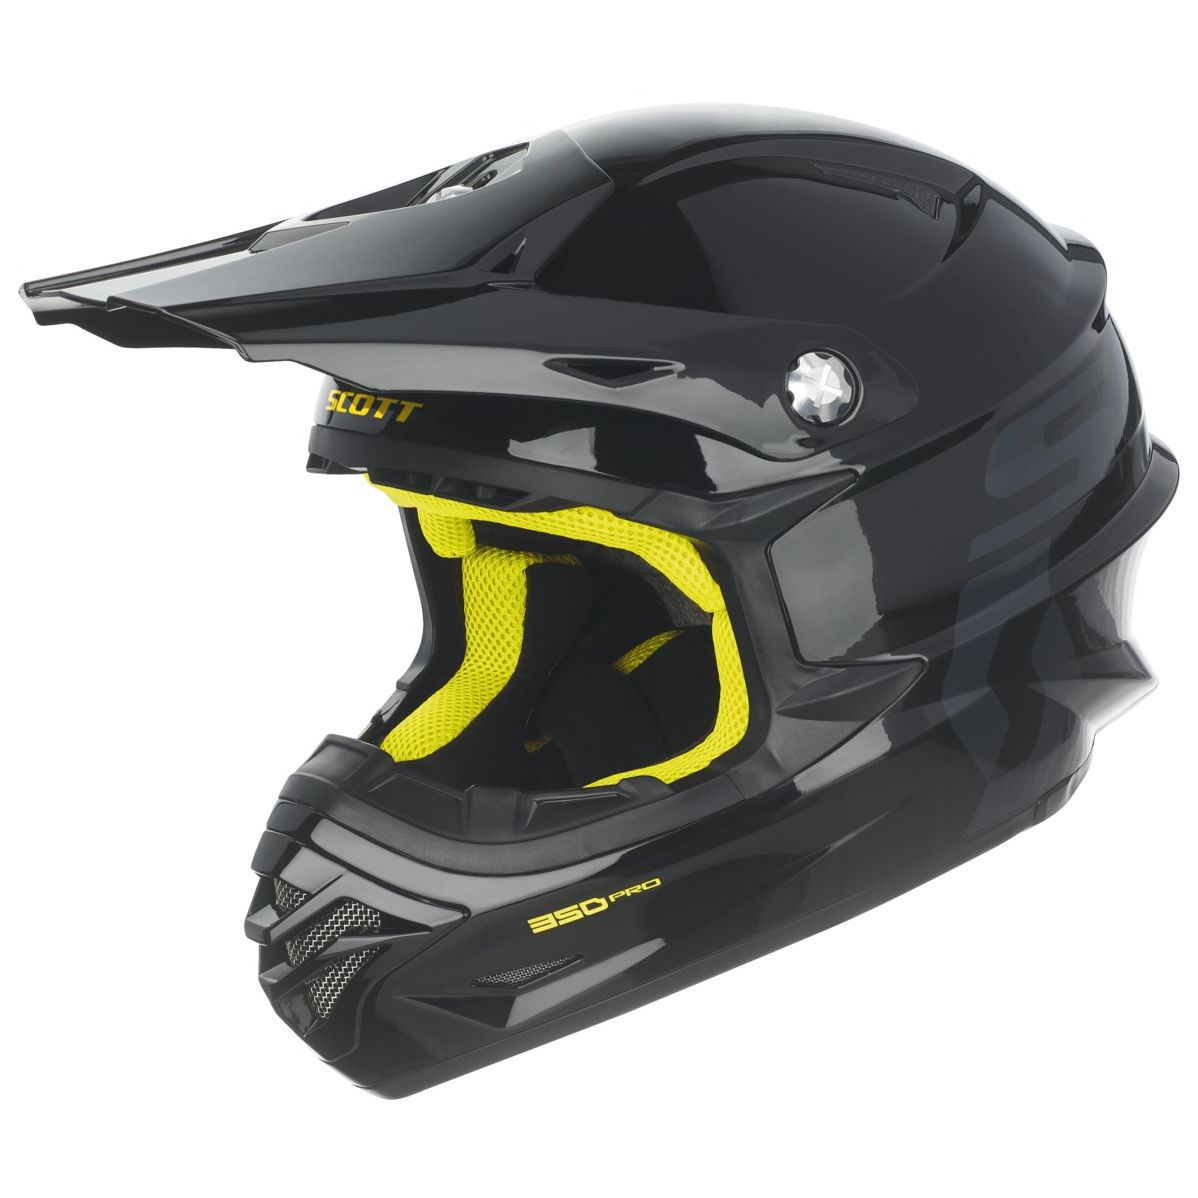 Casque cross Scott destockage 350 PRO BLACK YELLOW 2017